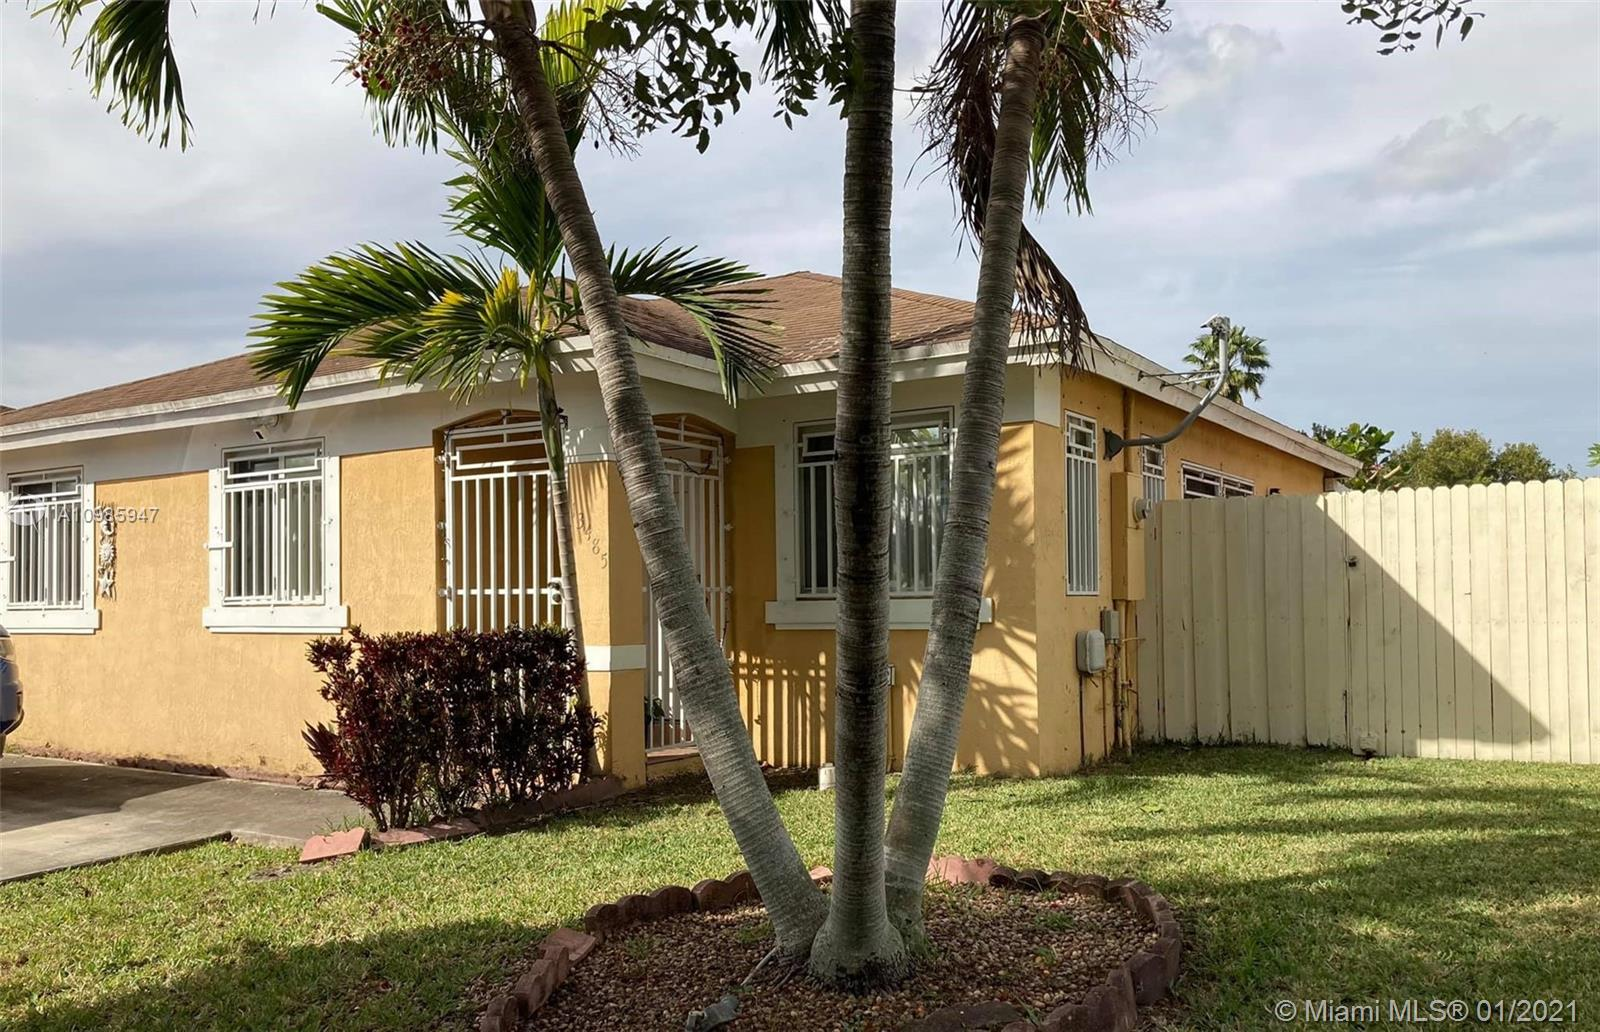 13485 SW 284th St Property Photo - Homestead, FL real estate listing